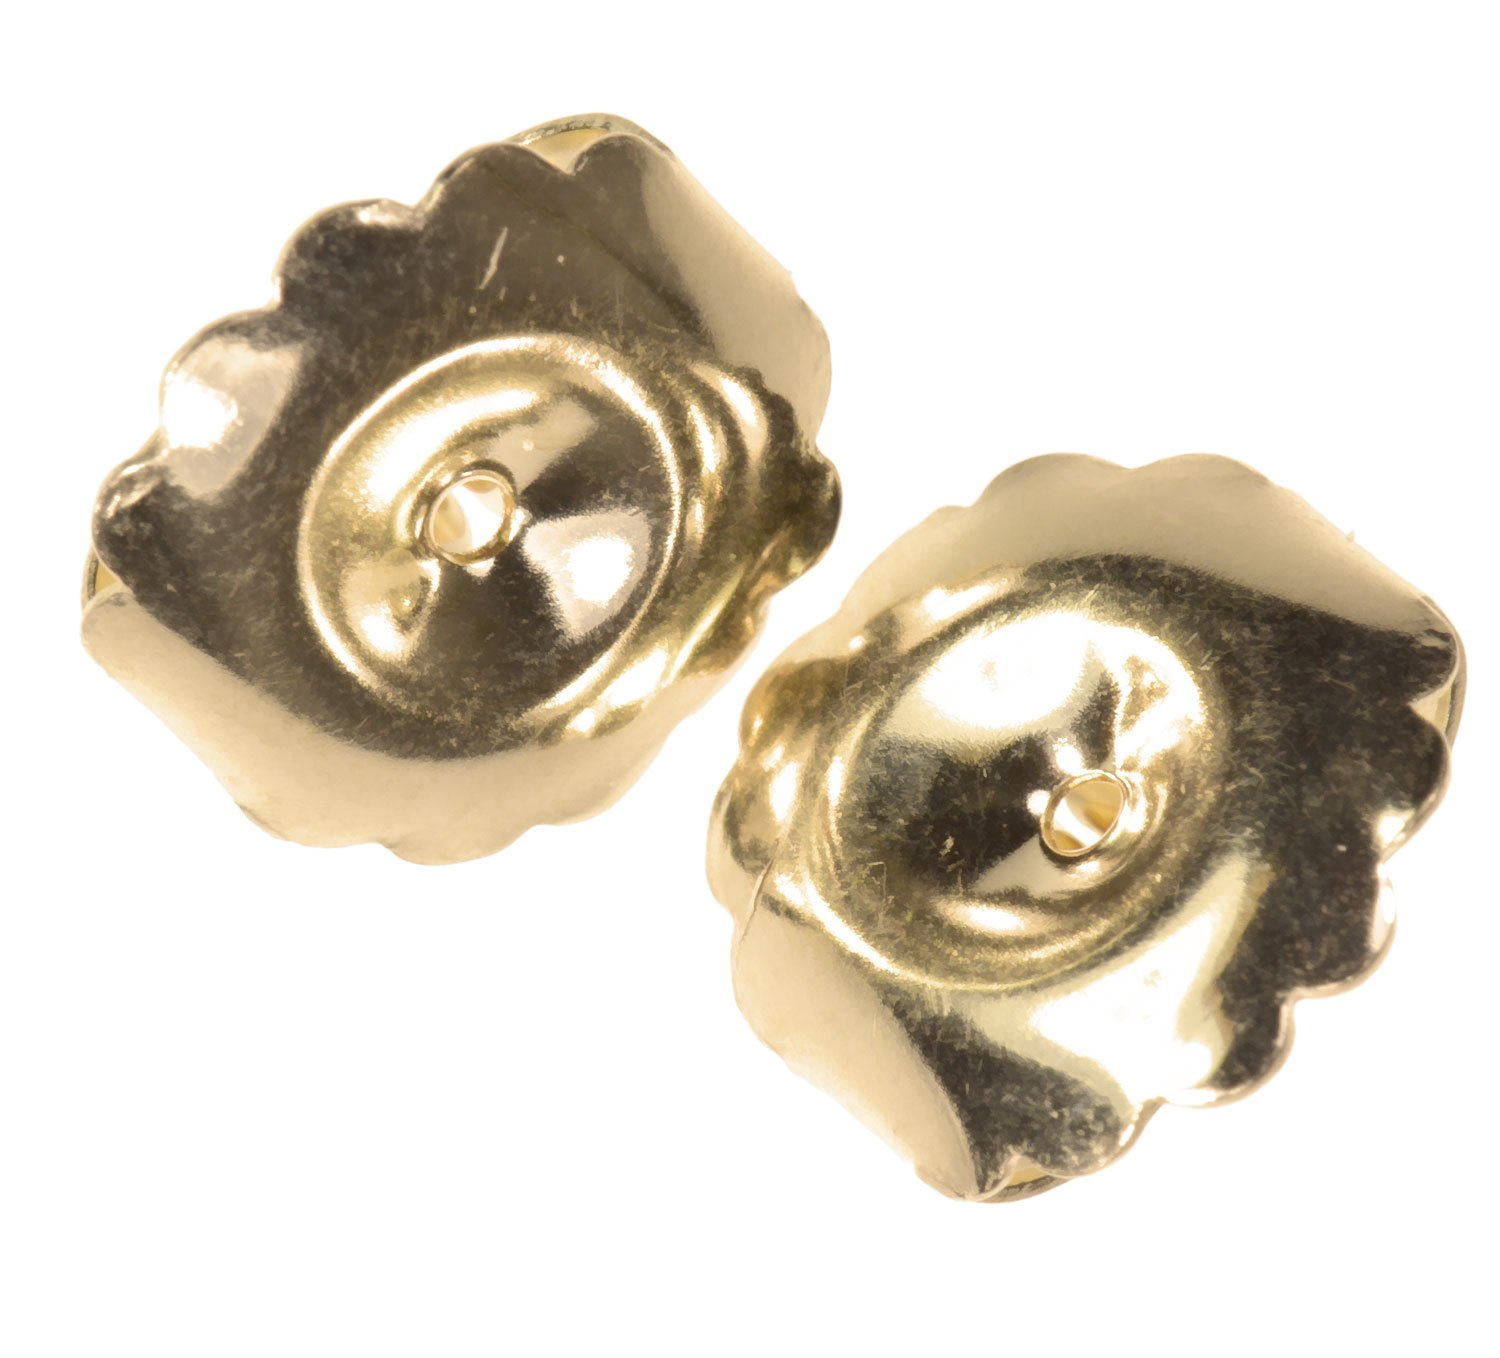 Solid 14K Gold Jumbo Earring Back Premium Extra-Jumbo Swirl 10mm 1-Pair by uGems (Image #1)